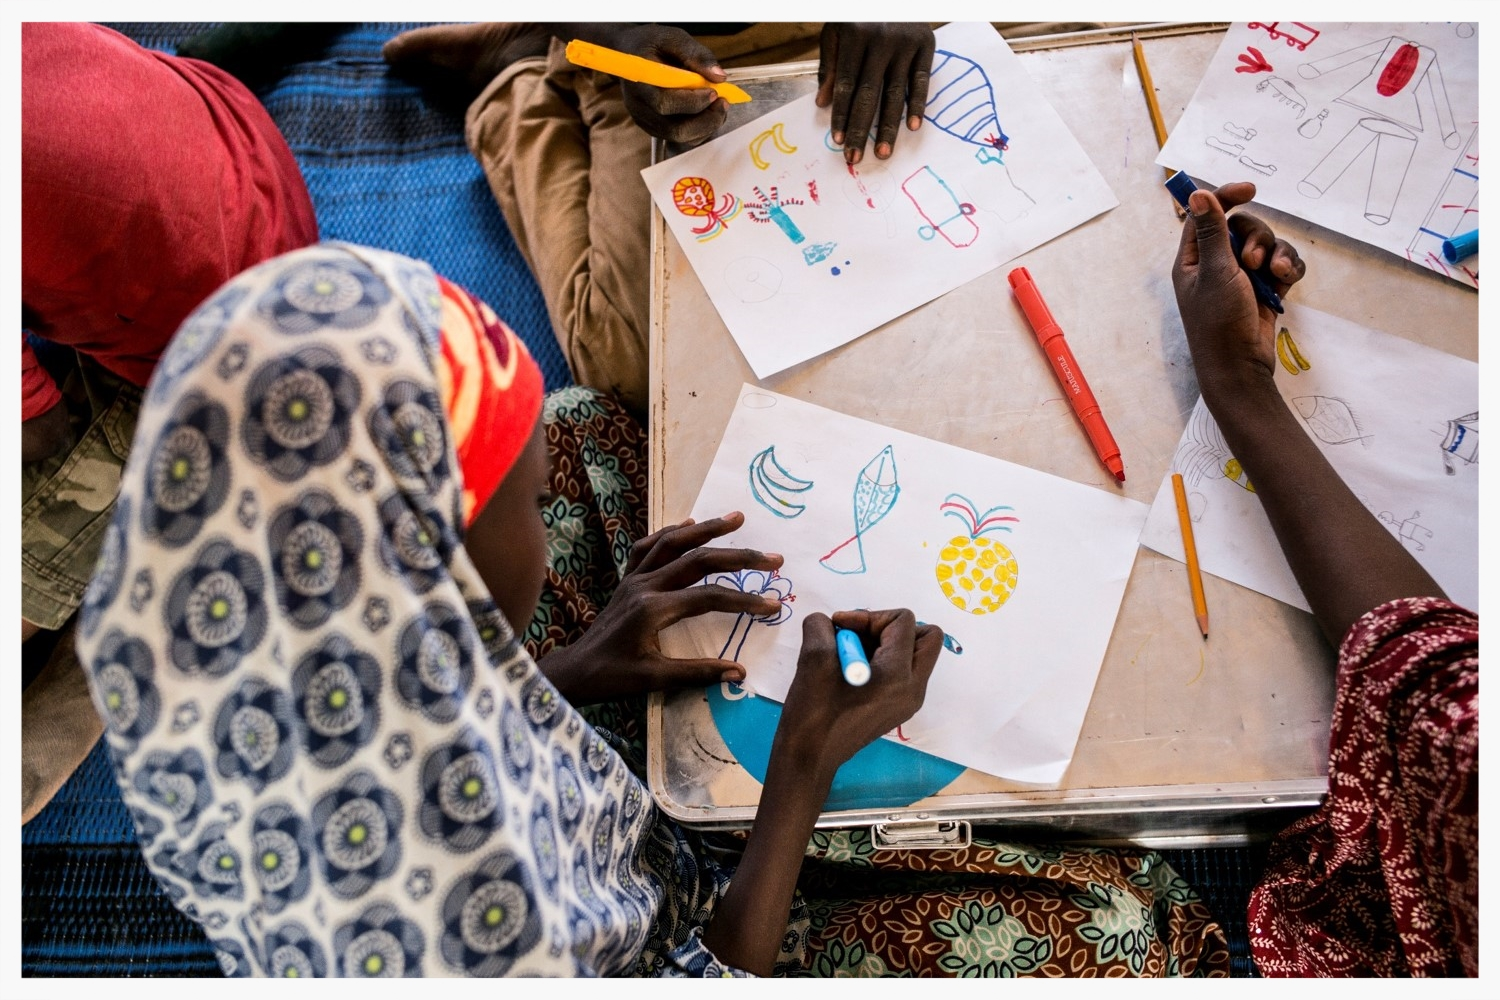 More children than ever are enrolling in primary school, but some 59 million boys and girls are still missing out on their right to primary school education.